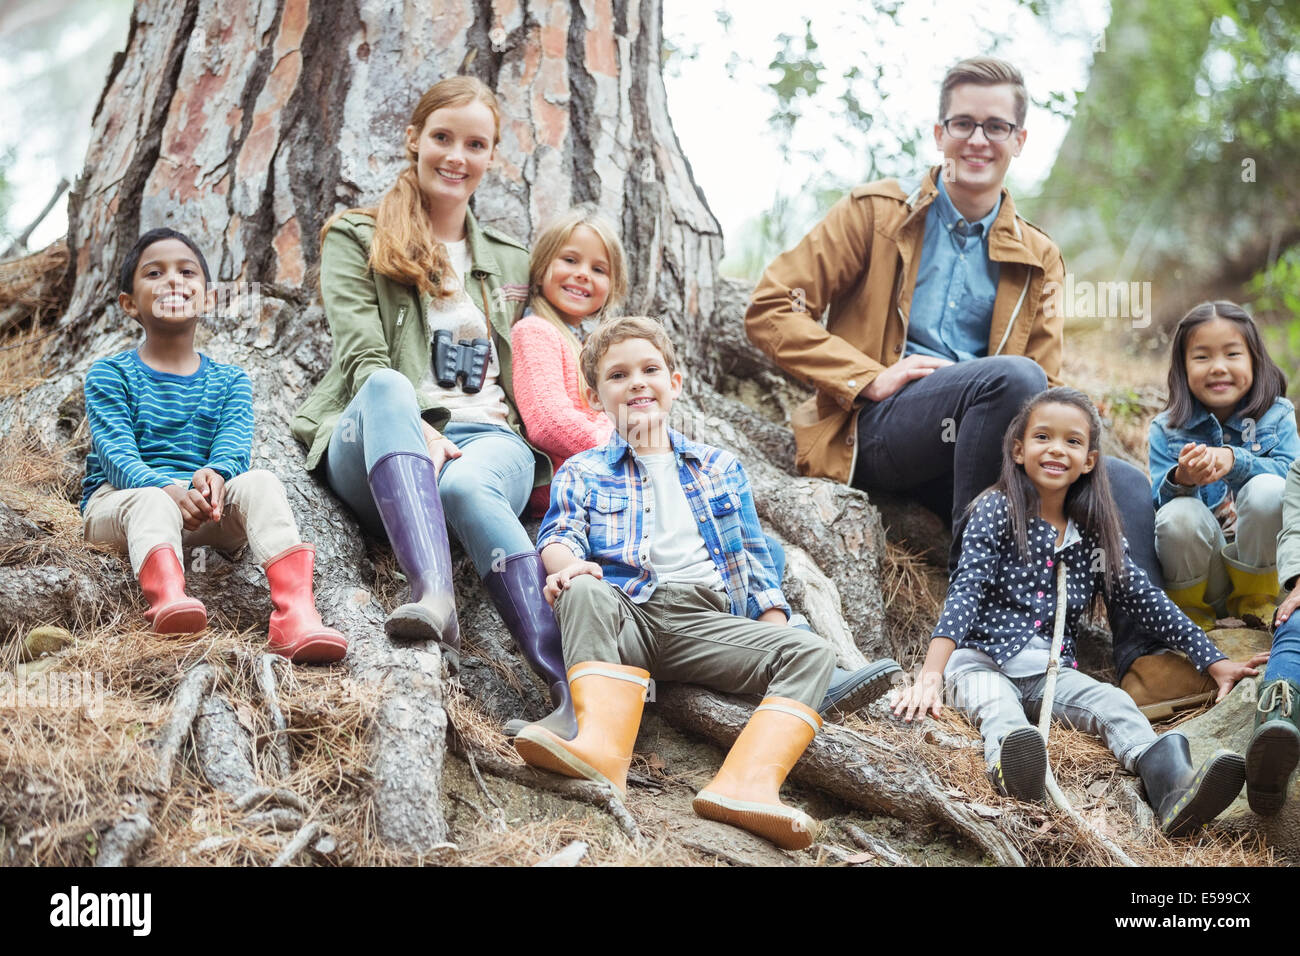 Students and teachers smiling in forest Stock Photo